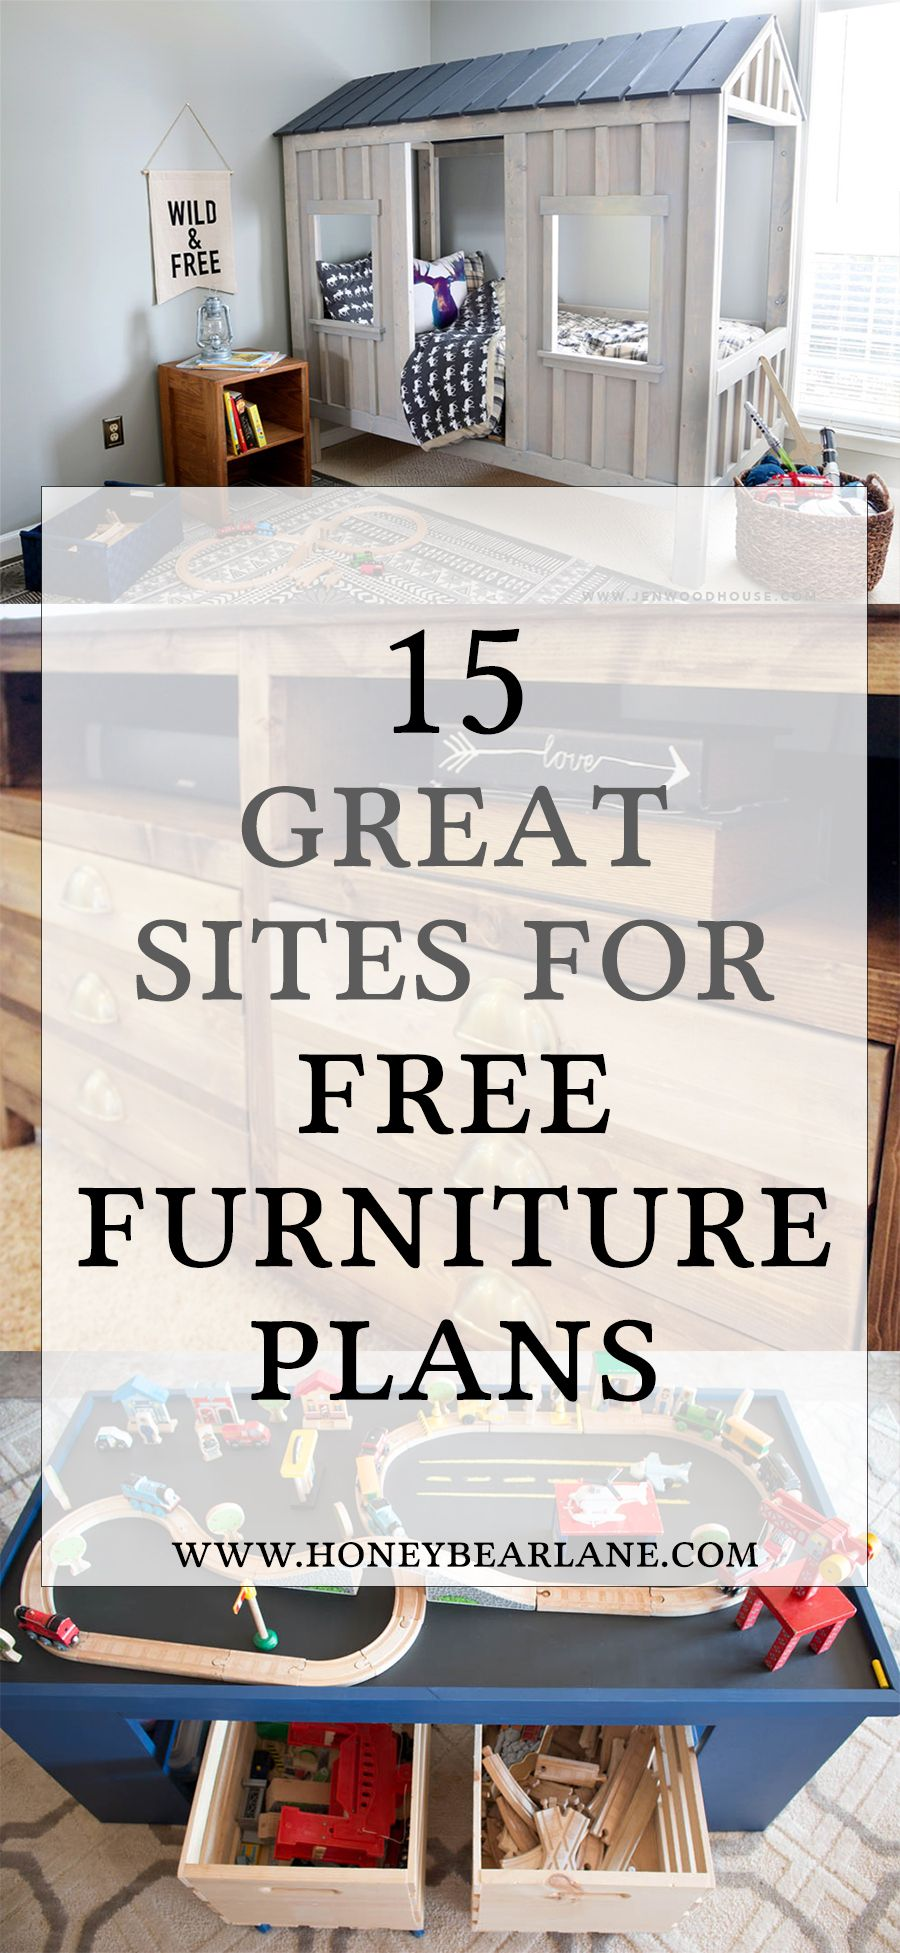 15 Awesome Sites For Free Furniture Building Plans